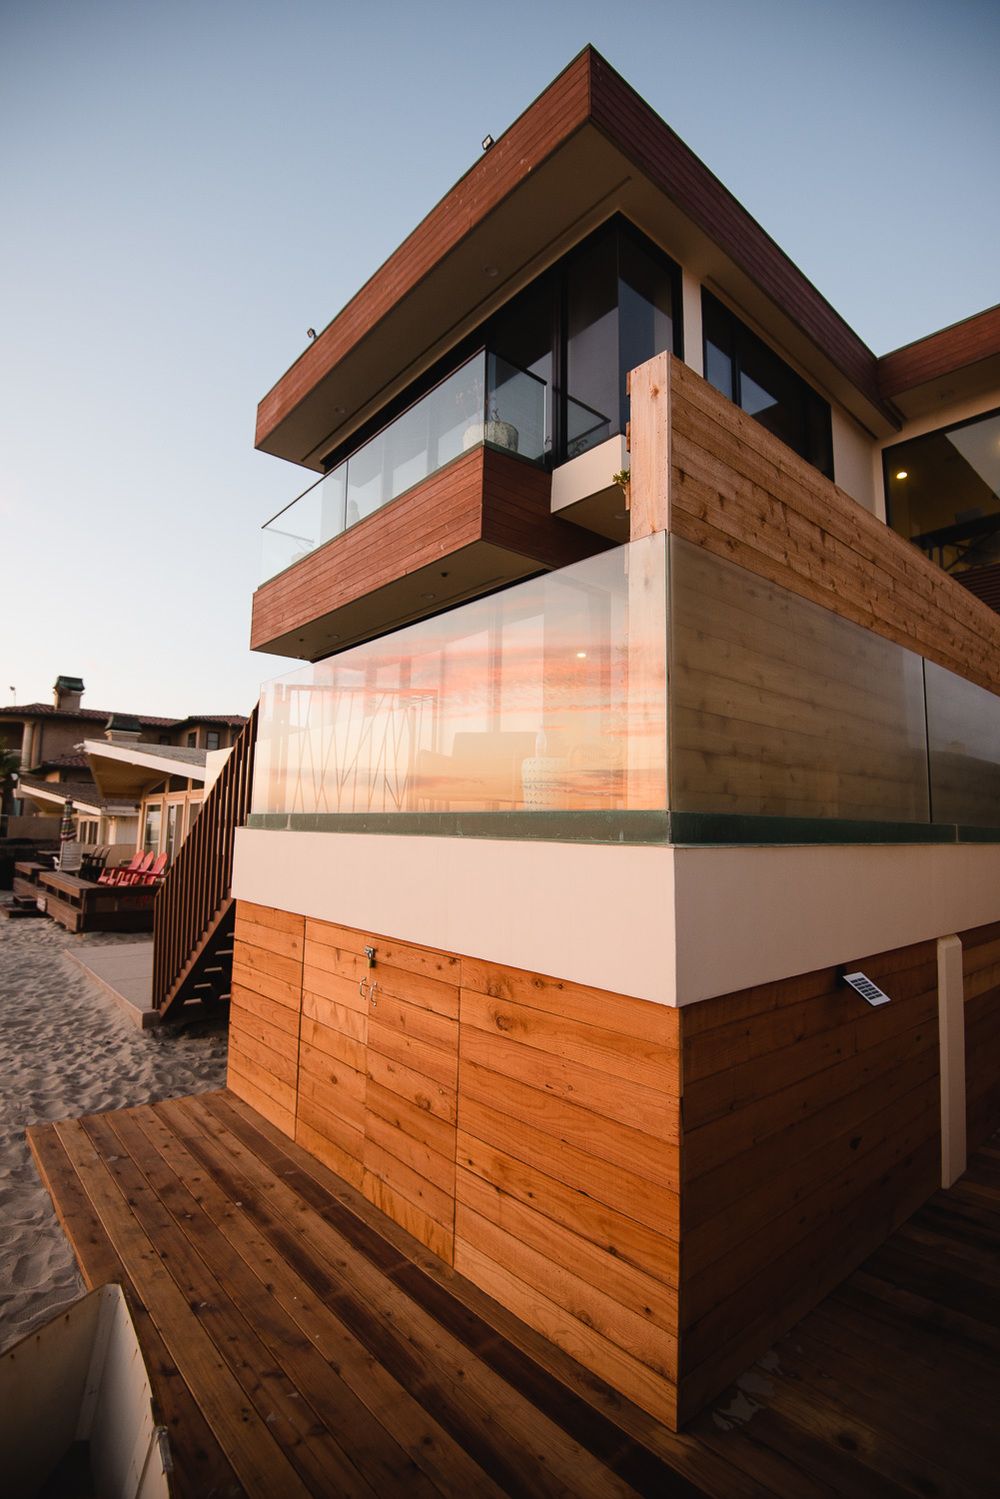 A FEW TWEAKS Levi turned the open space beneath the house into a sleek surf shack with a wraparound walkway.